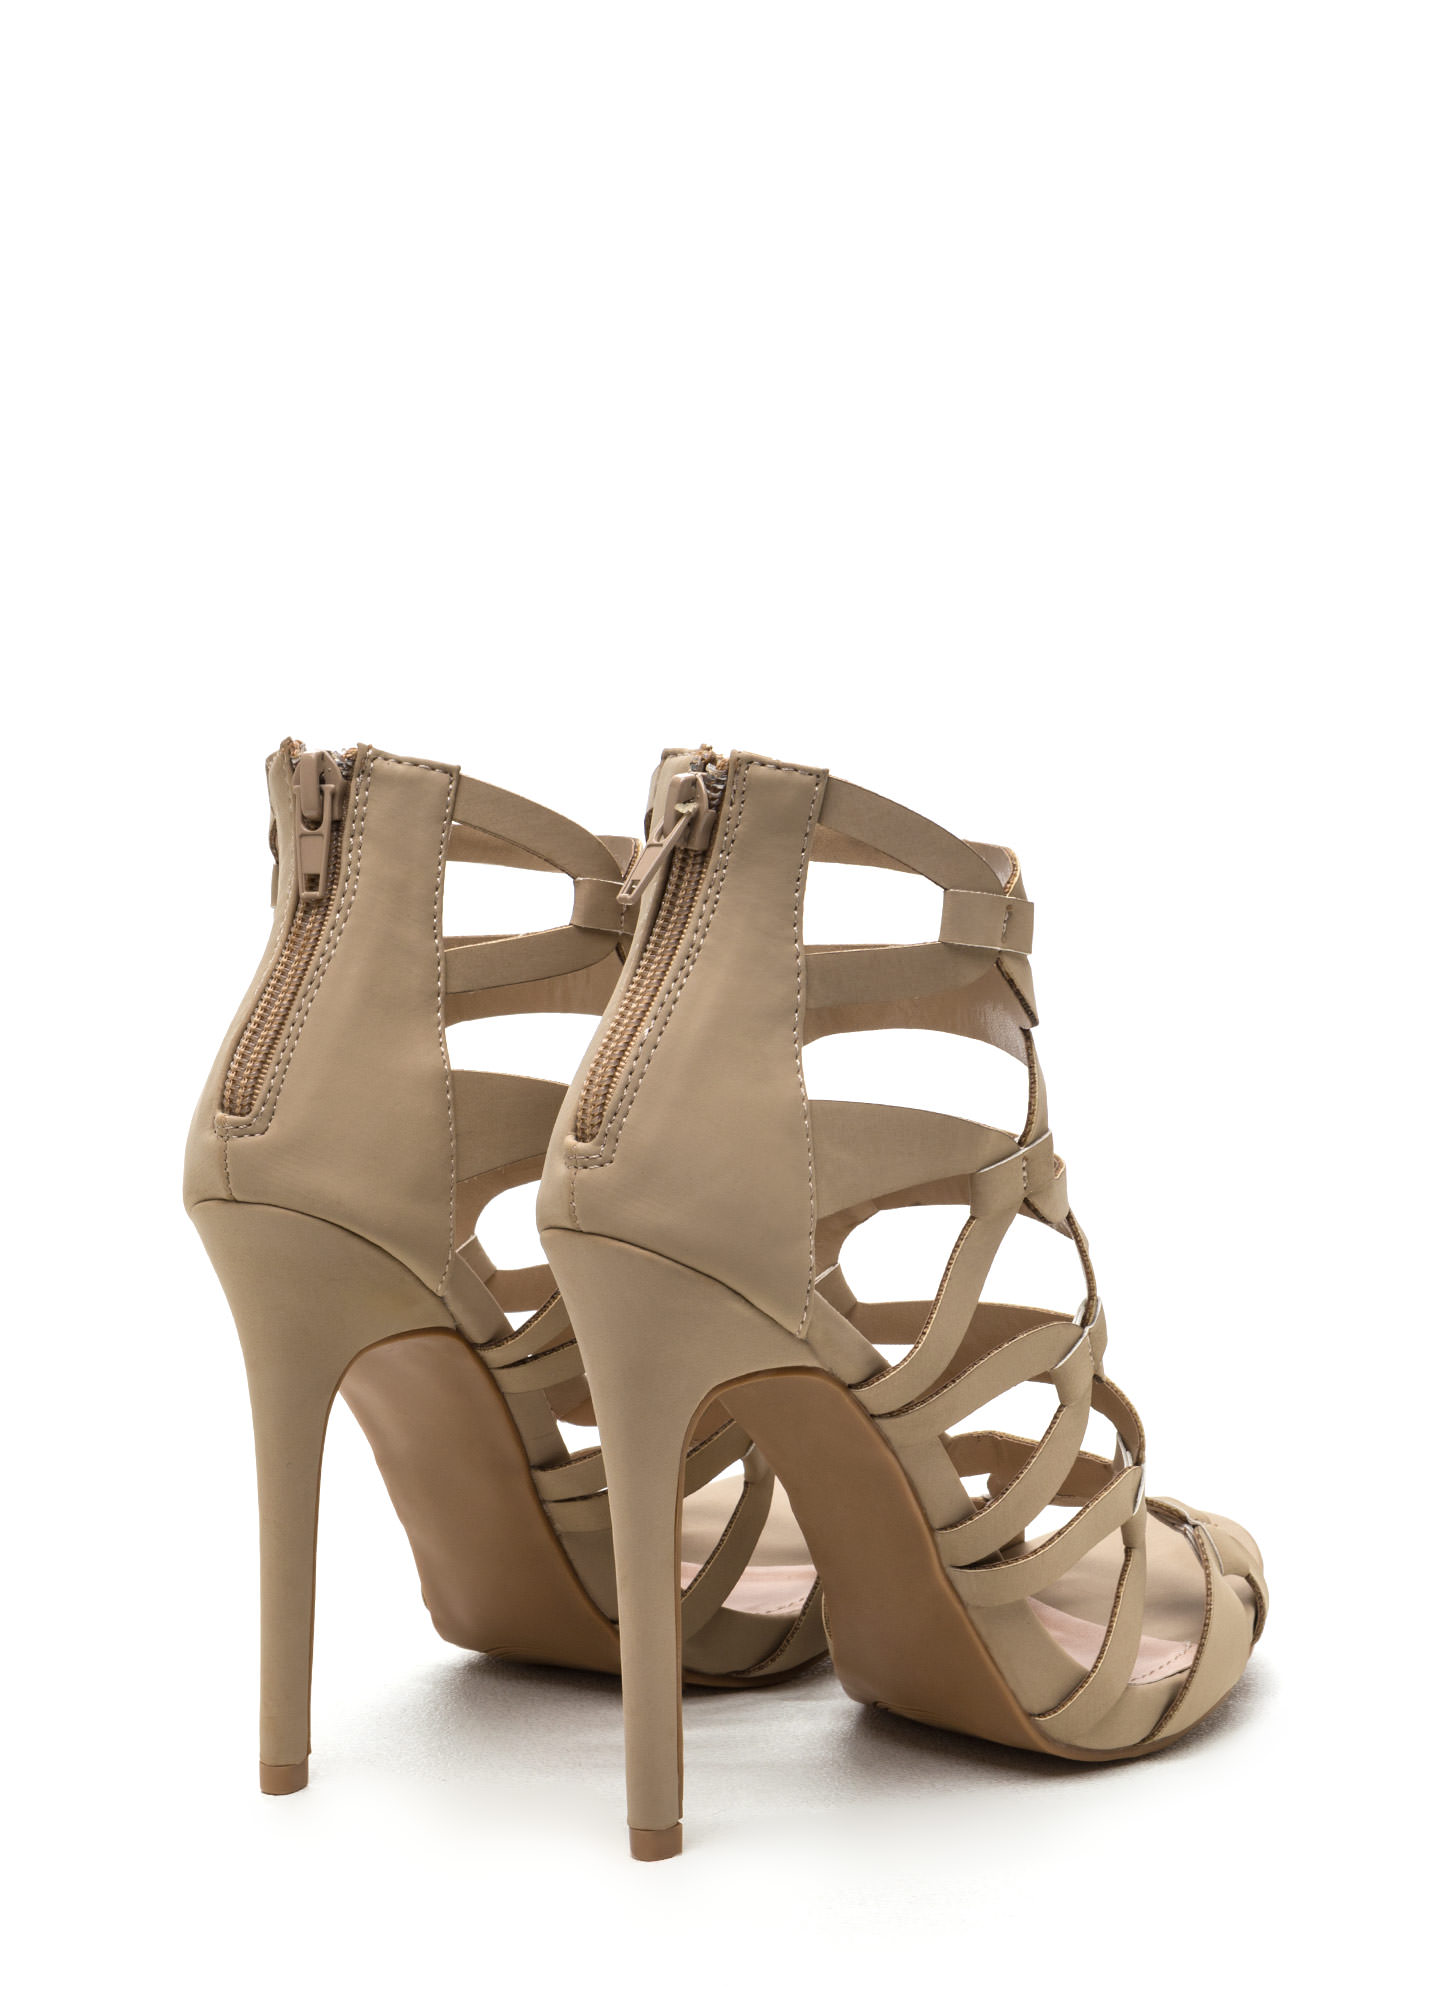 Confidence Boost Faux Nubuck Caged Heels NUDE